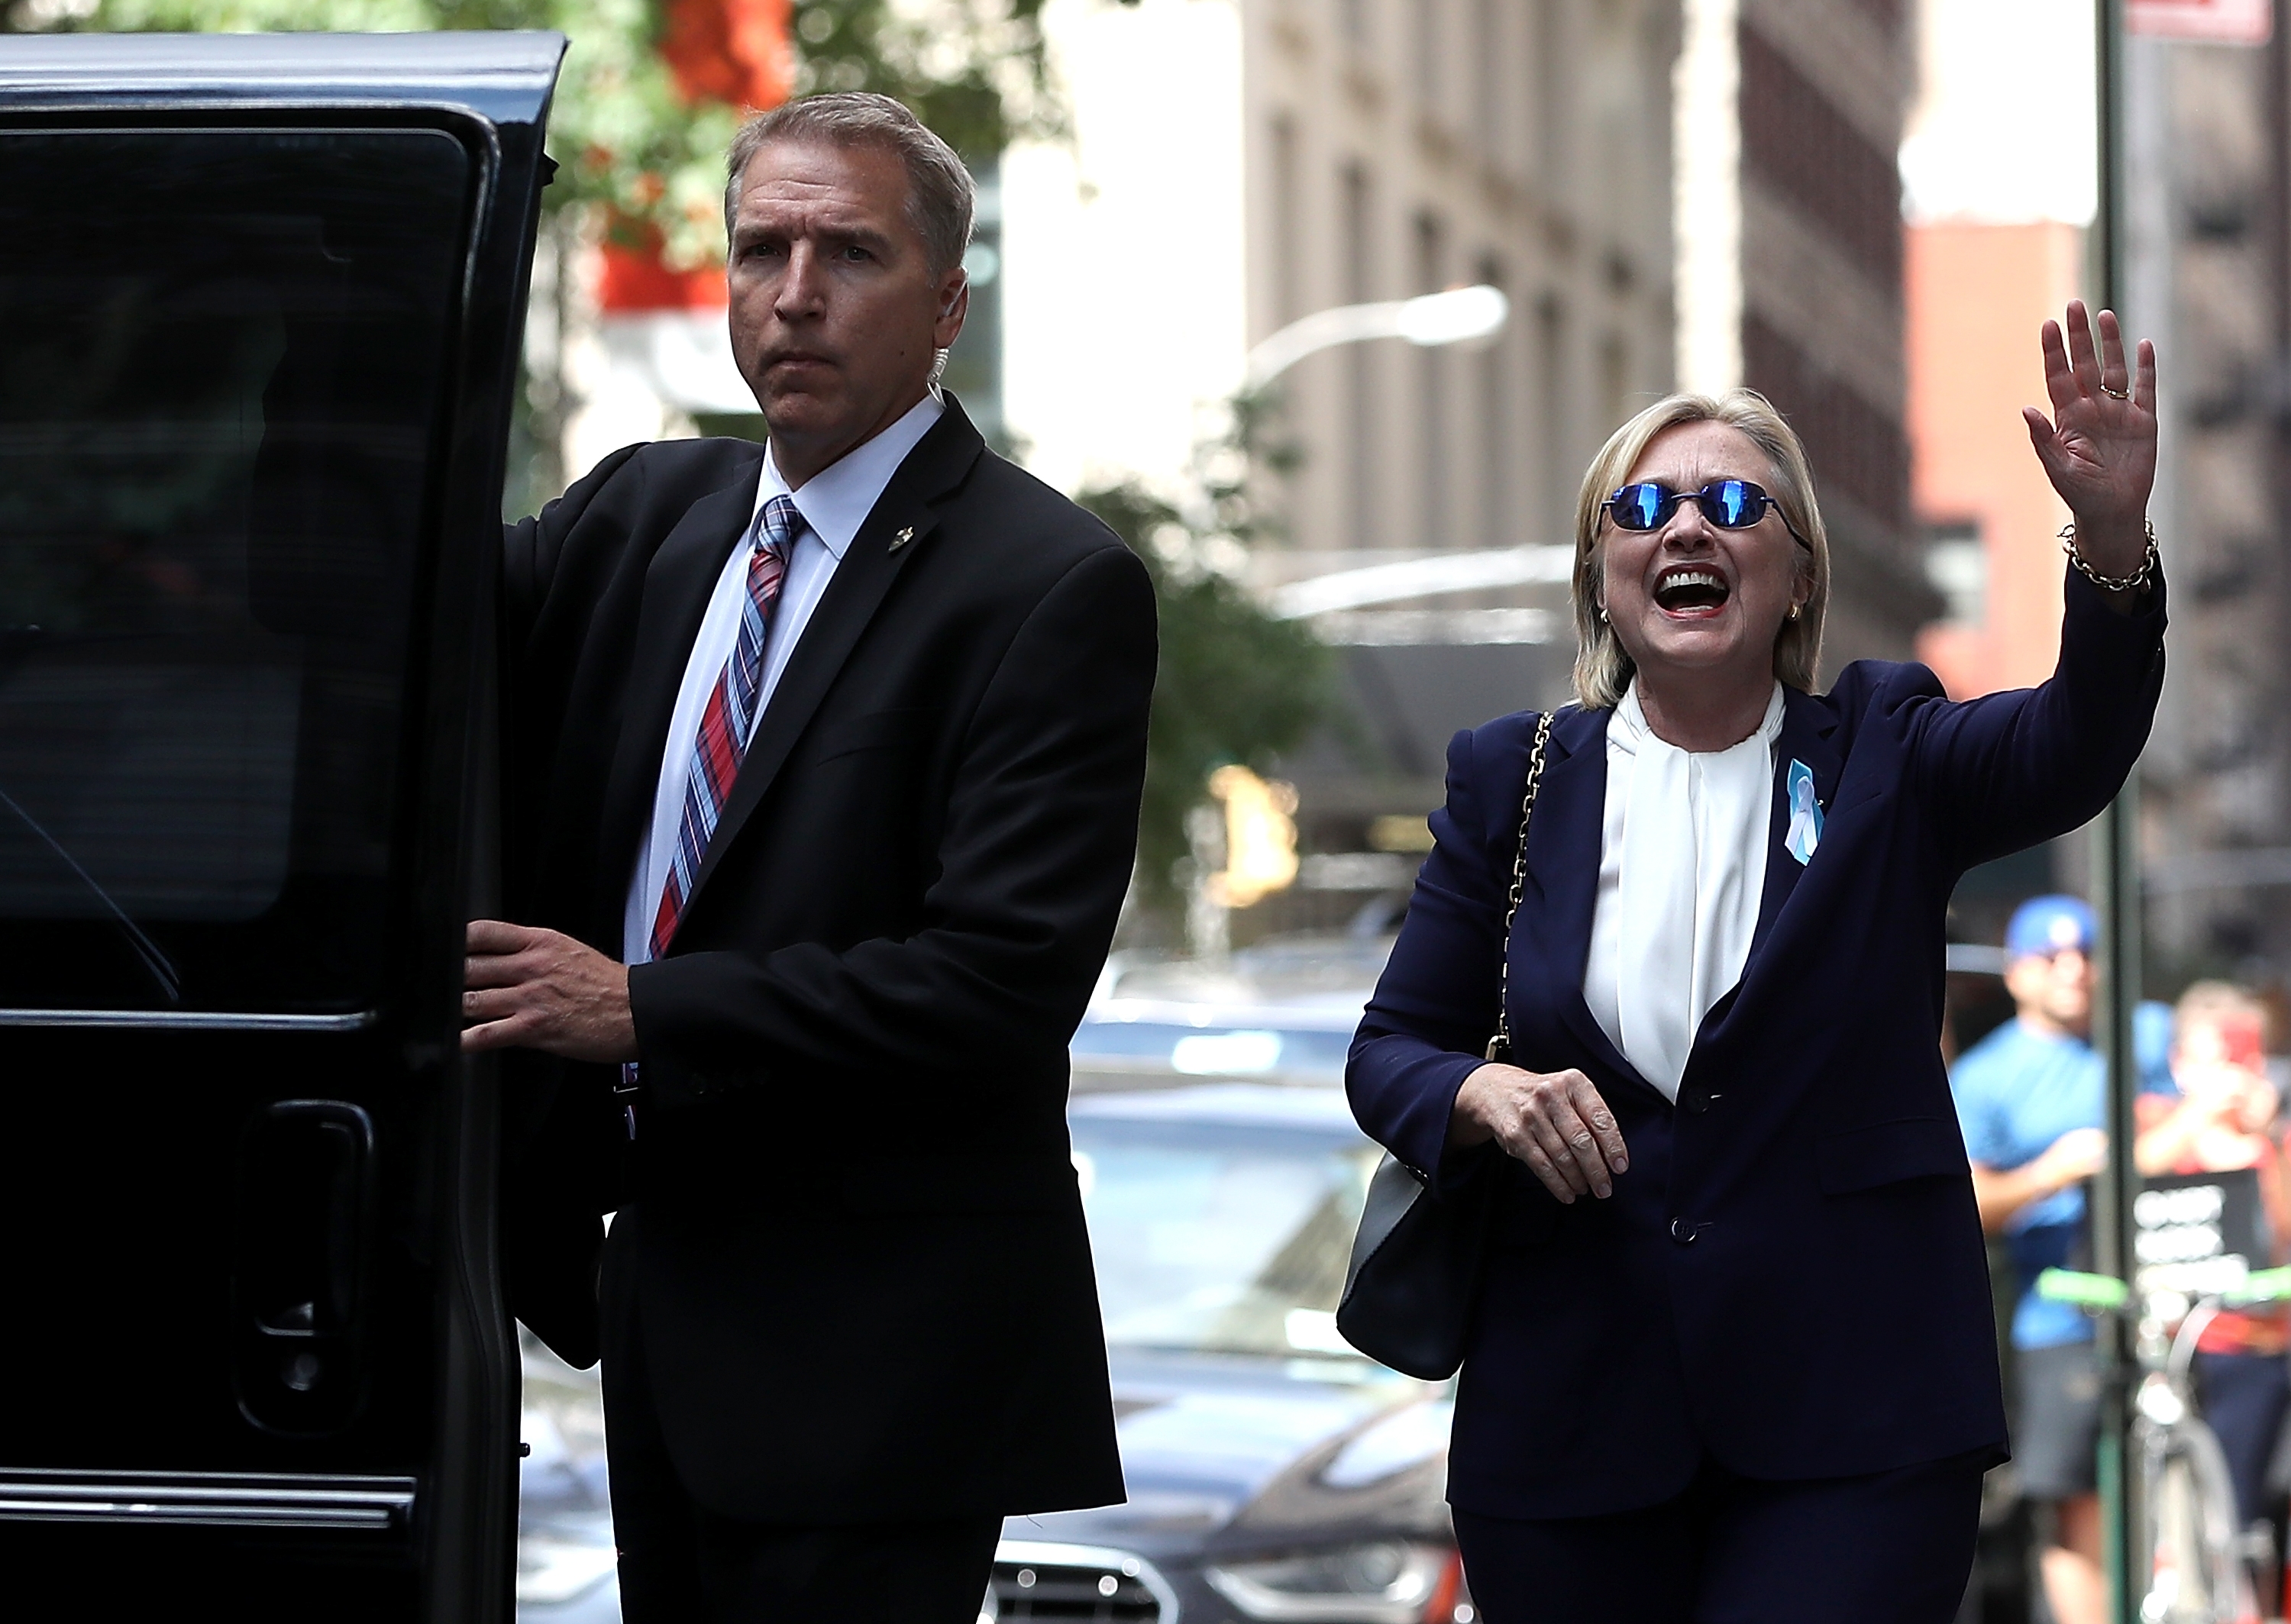 People Believe Hillary Clinton Was Replaced By Body Double After Collapse GettyImages 602406252